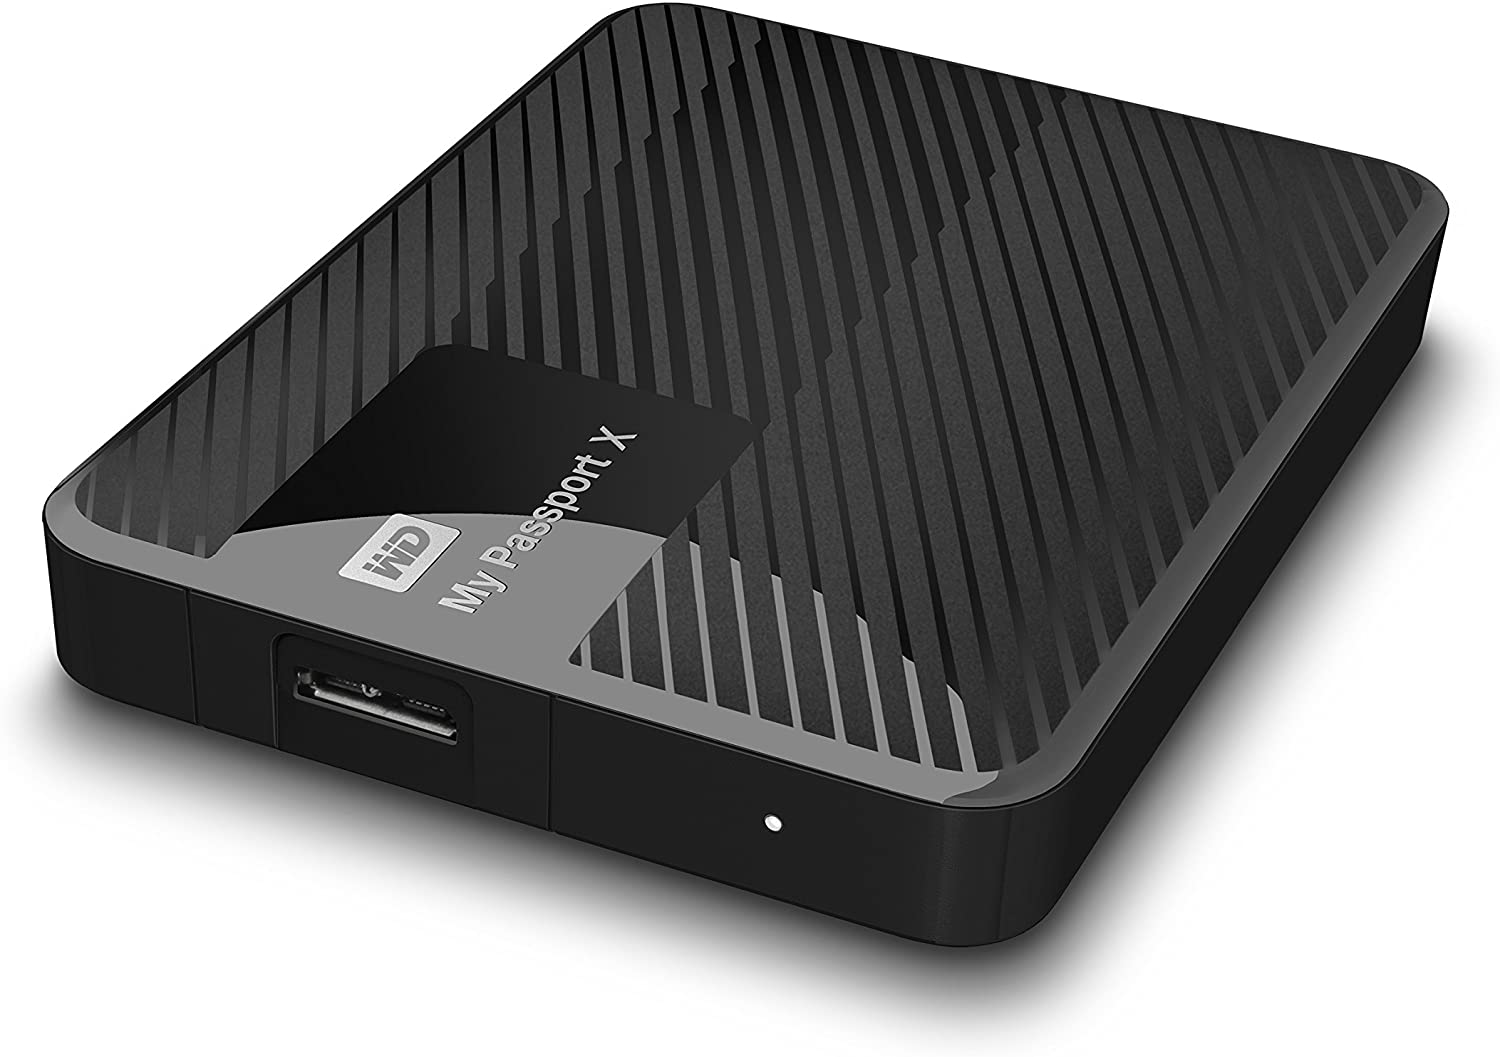 WD My Passport X_ Best External Hard Drive for Gaming